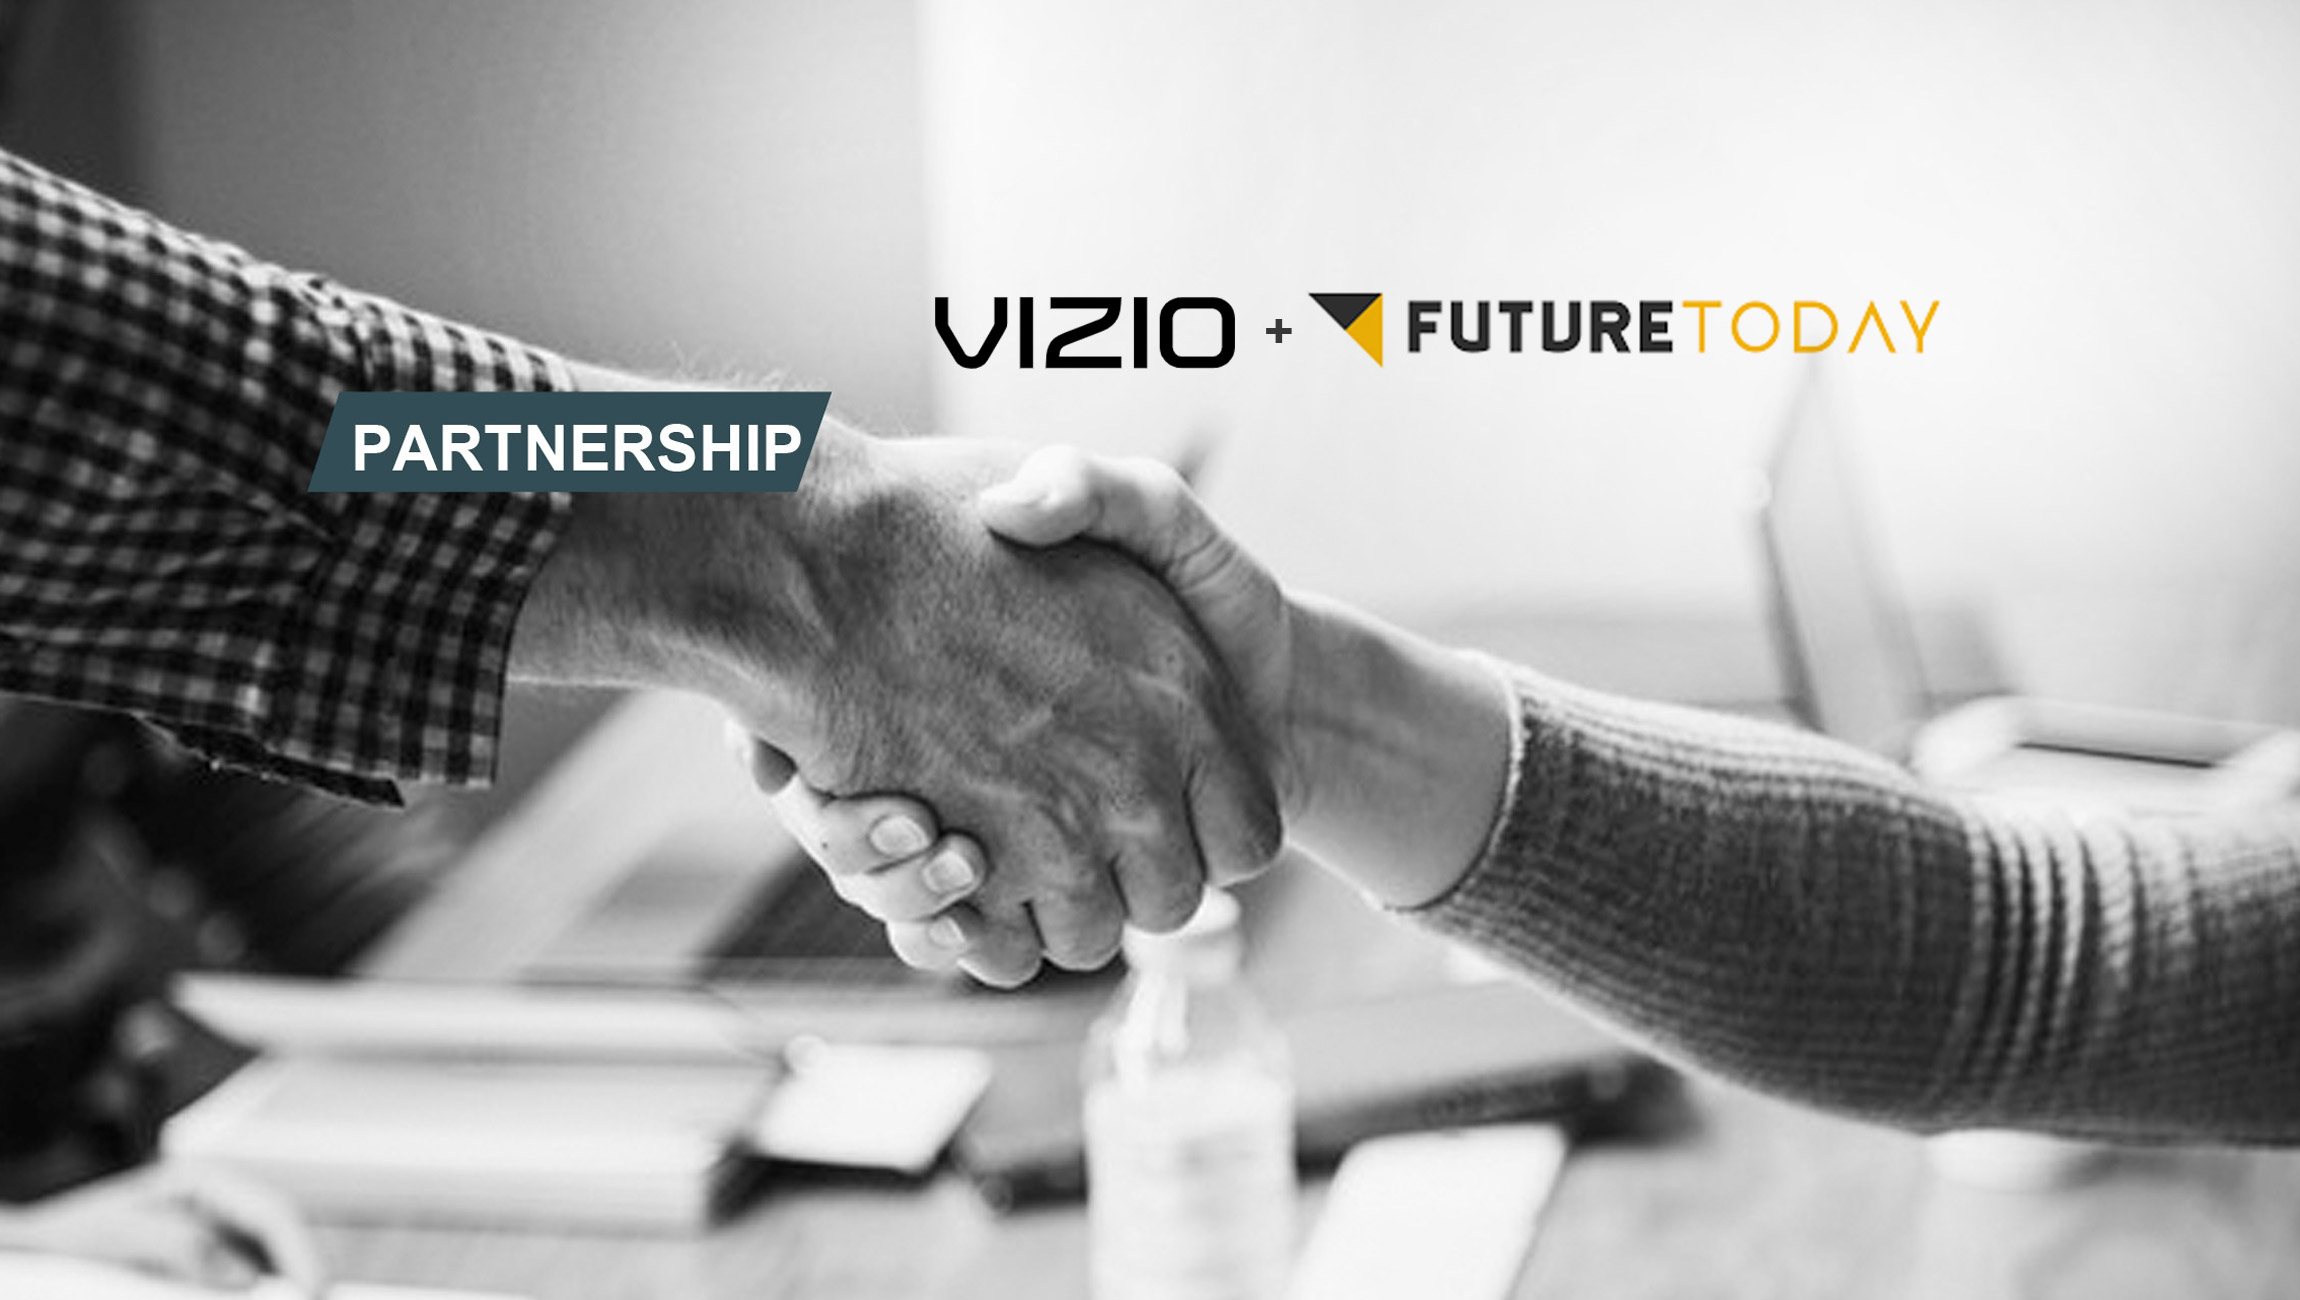 VIZIO Expands Its Partnership With Future Today, Launching Two New Free Channels